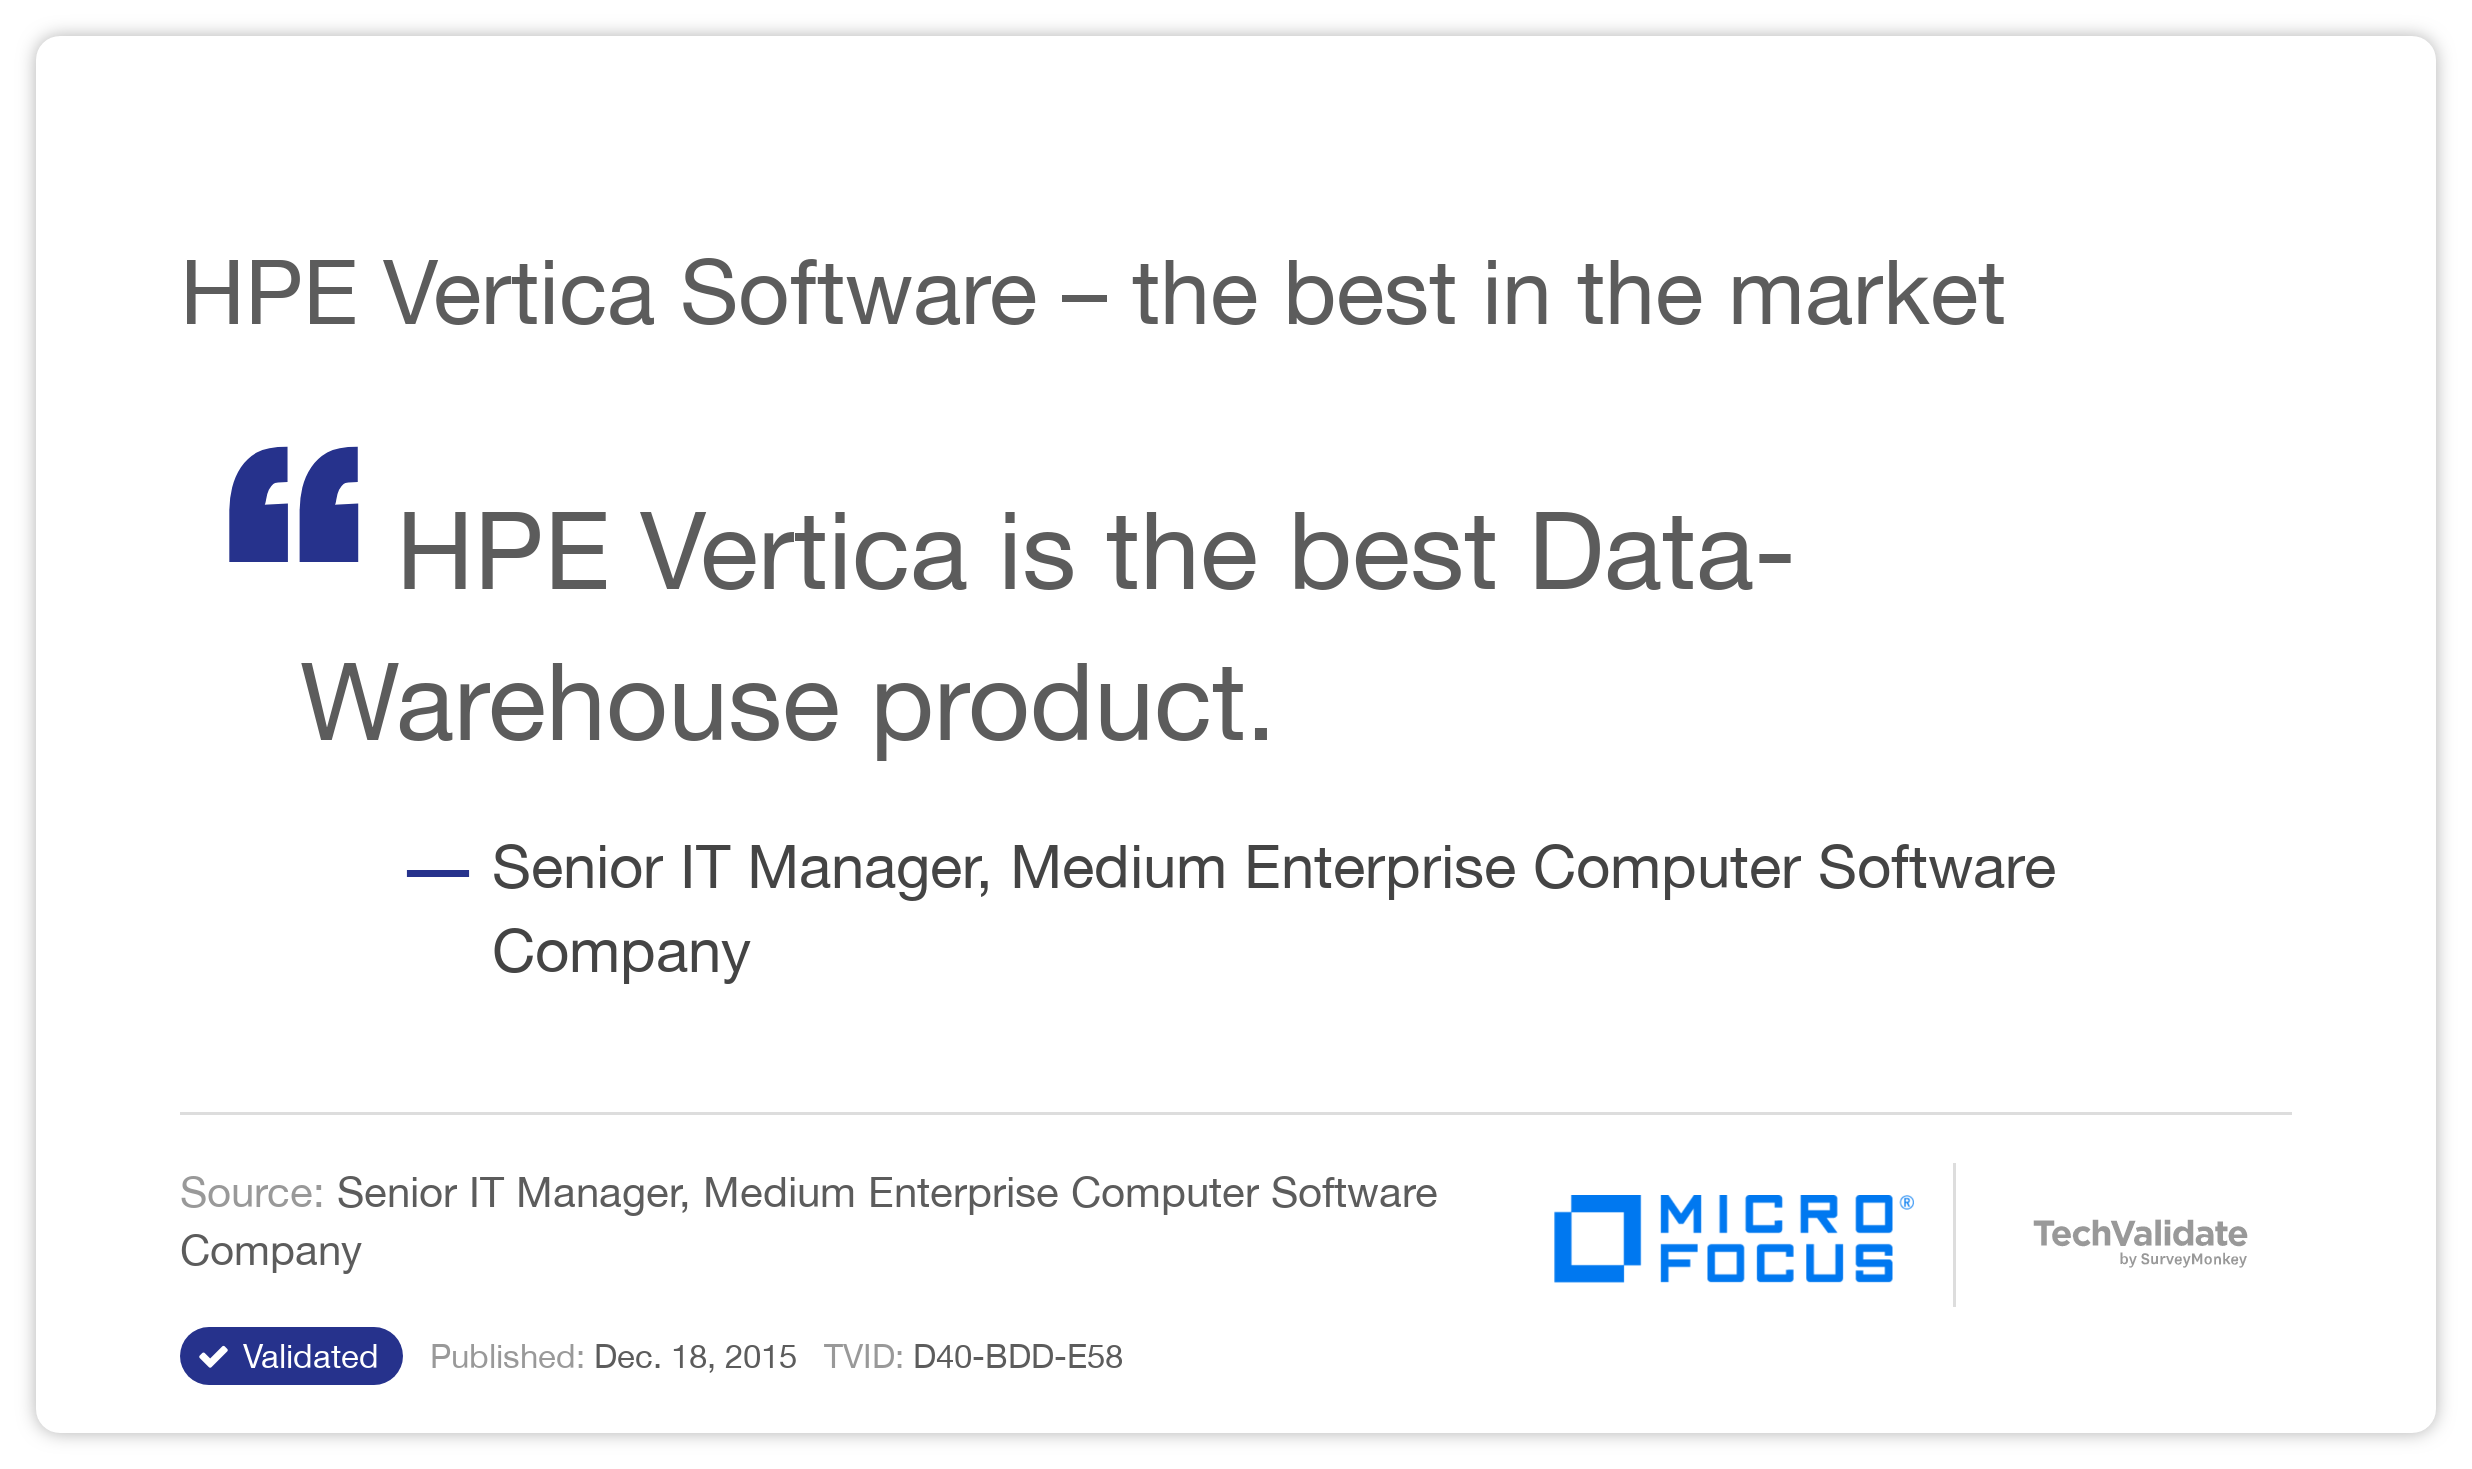 HPE Vertica Software-the best in the market